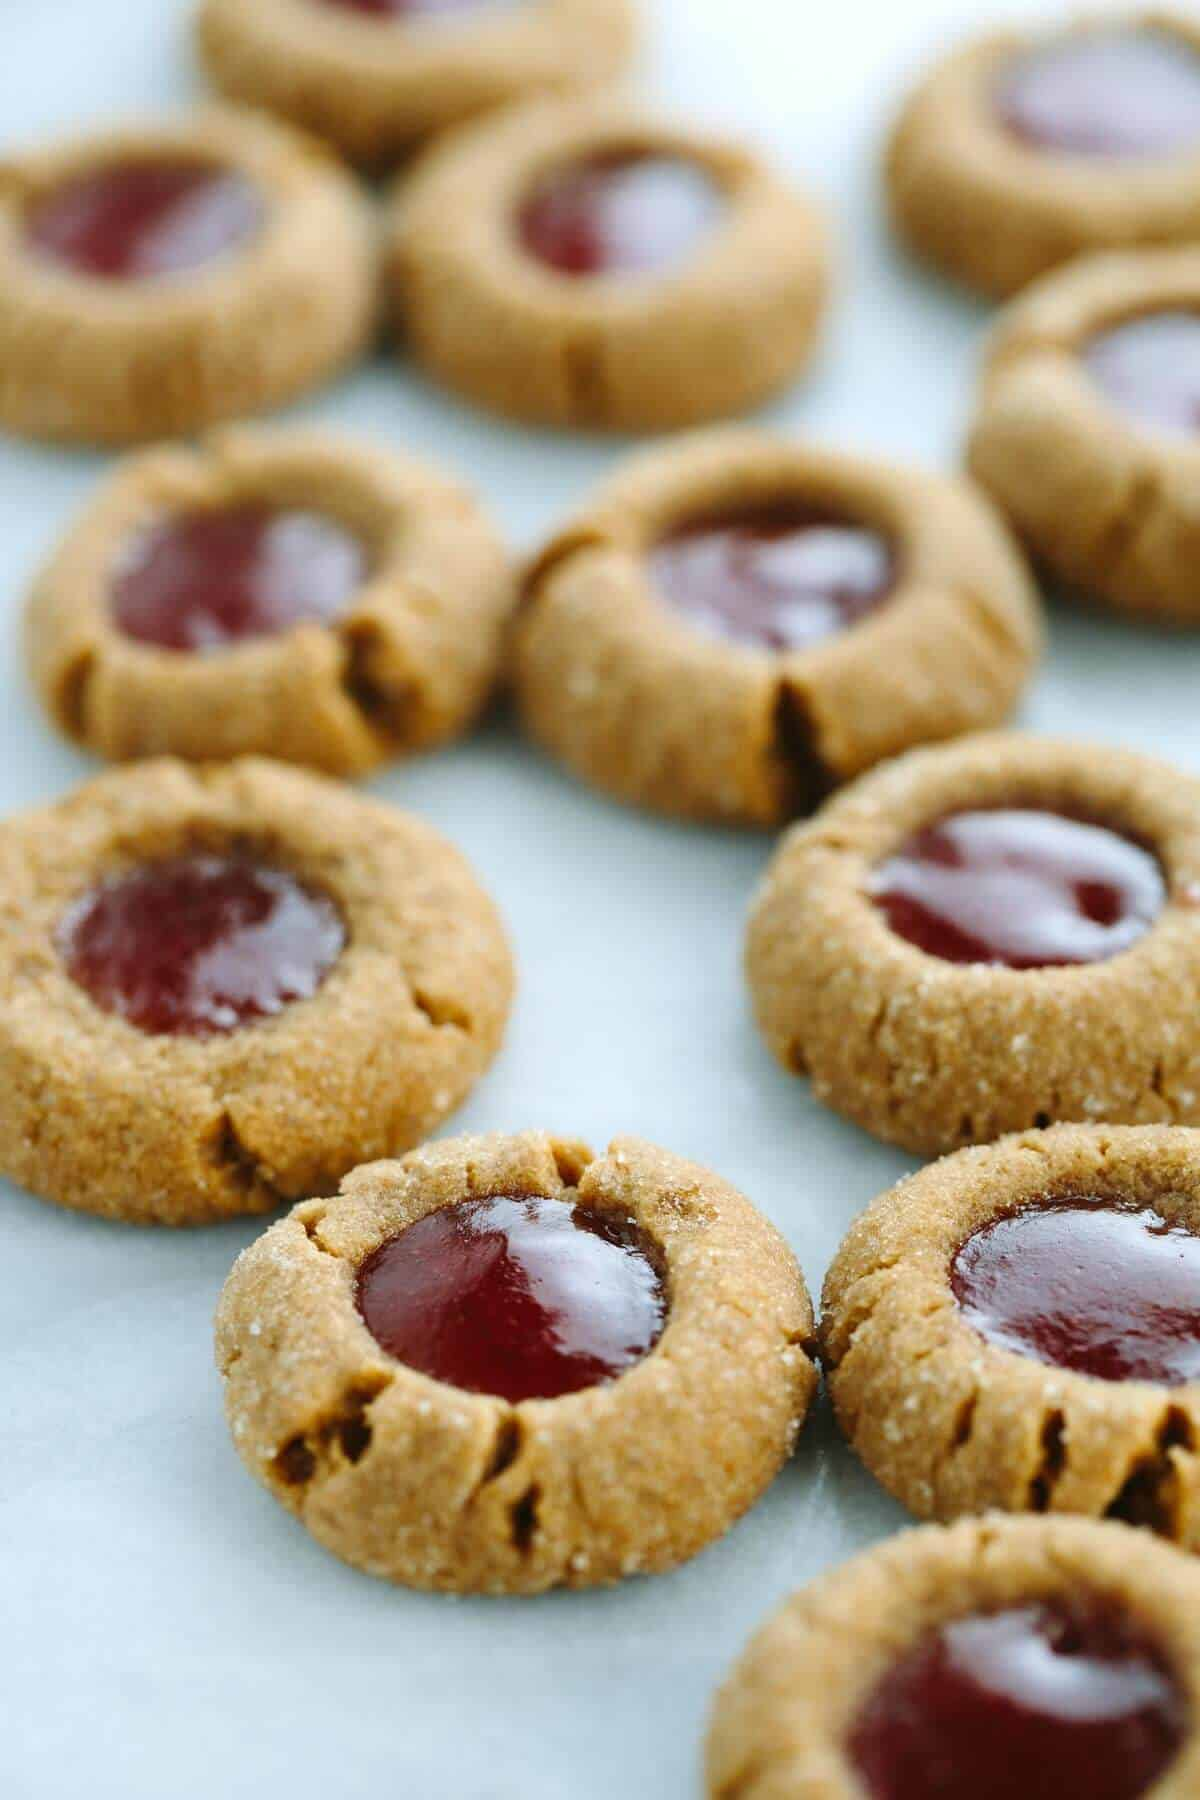 Flourless Peanut Butter and Jelly Thumbprint Cookies - this recipe is super easy to make, just one bowl and six ingredients! These PB&J cookies melt in your mouth and have a rich peanut flavor. | jessicagavin.com